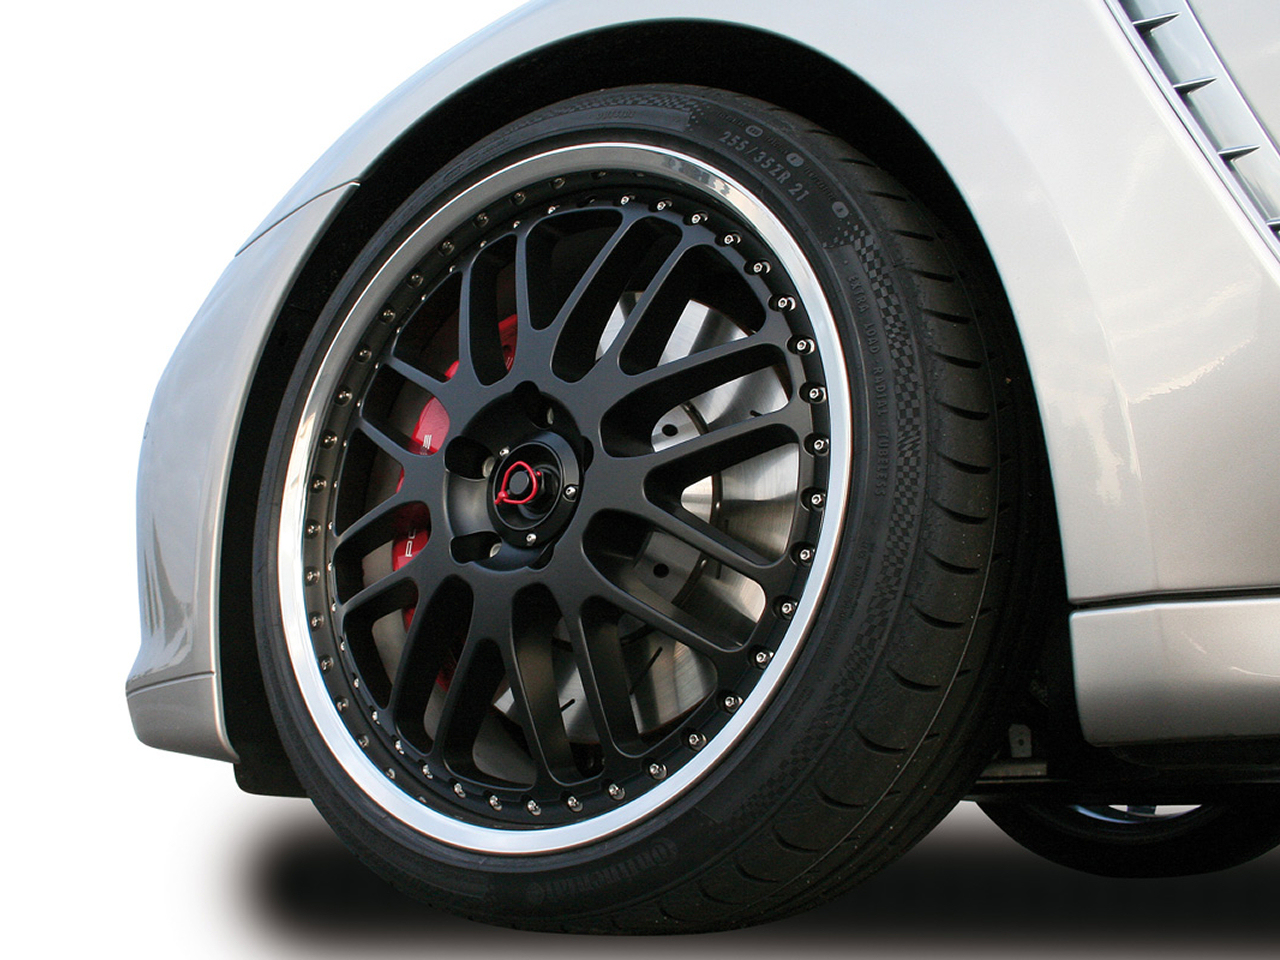 wallpaper 1280x960: Porsche Panamera With Cargraphic 'Sport' Wheel in 21 Inch